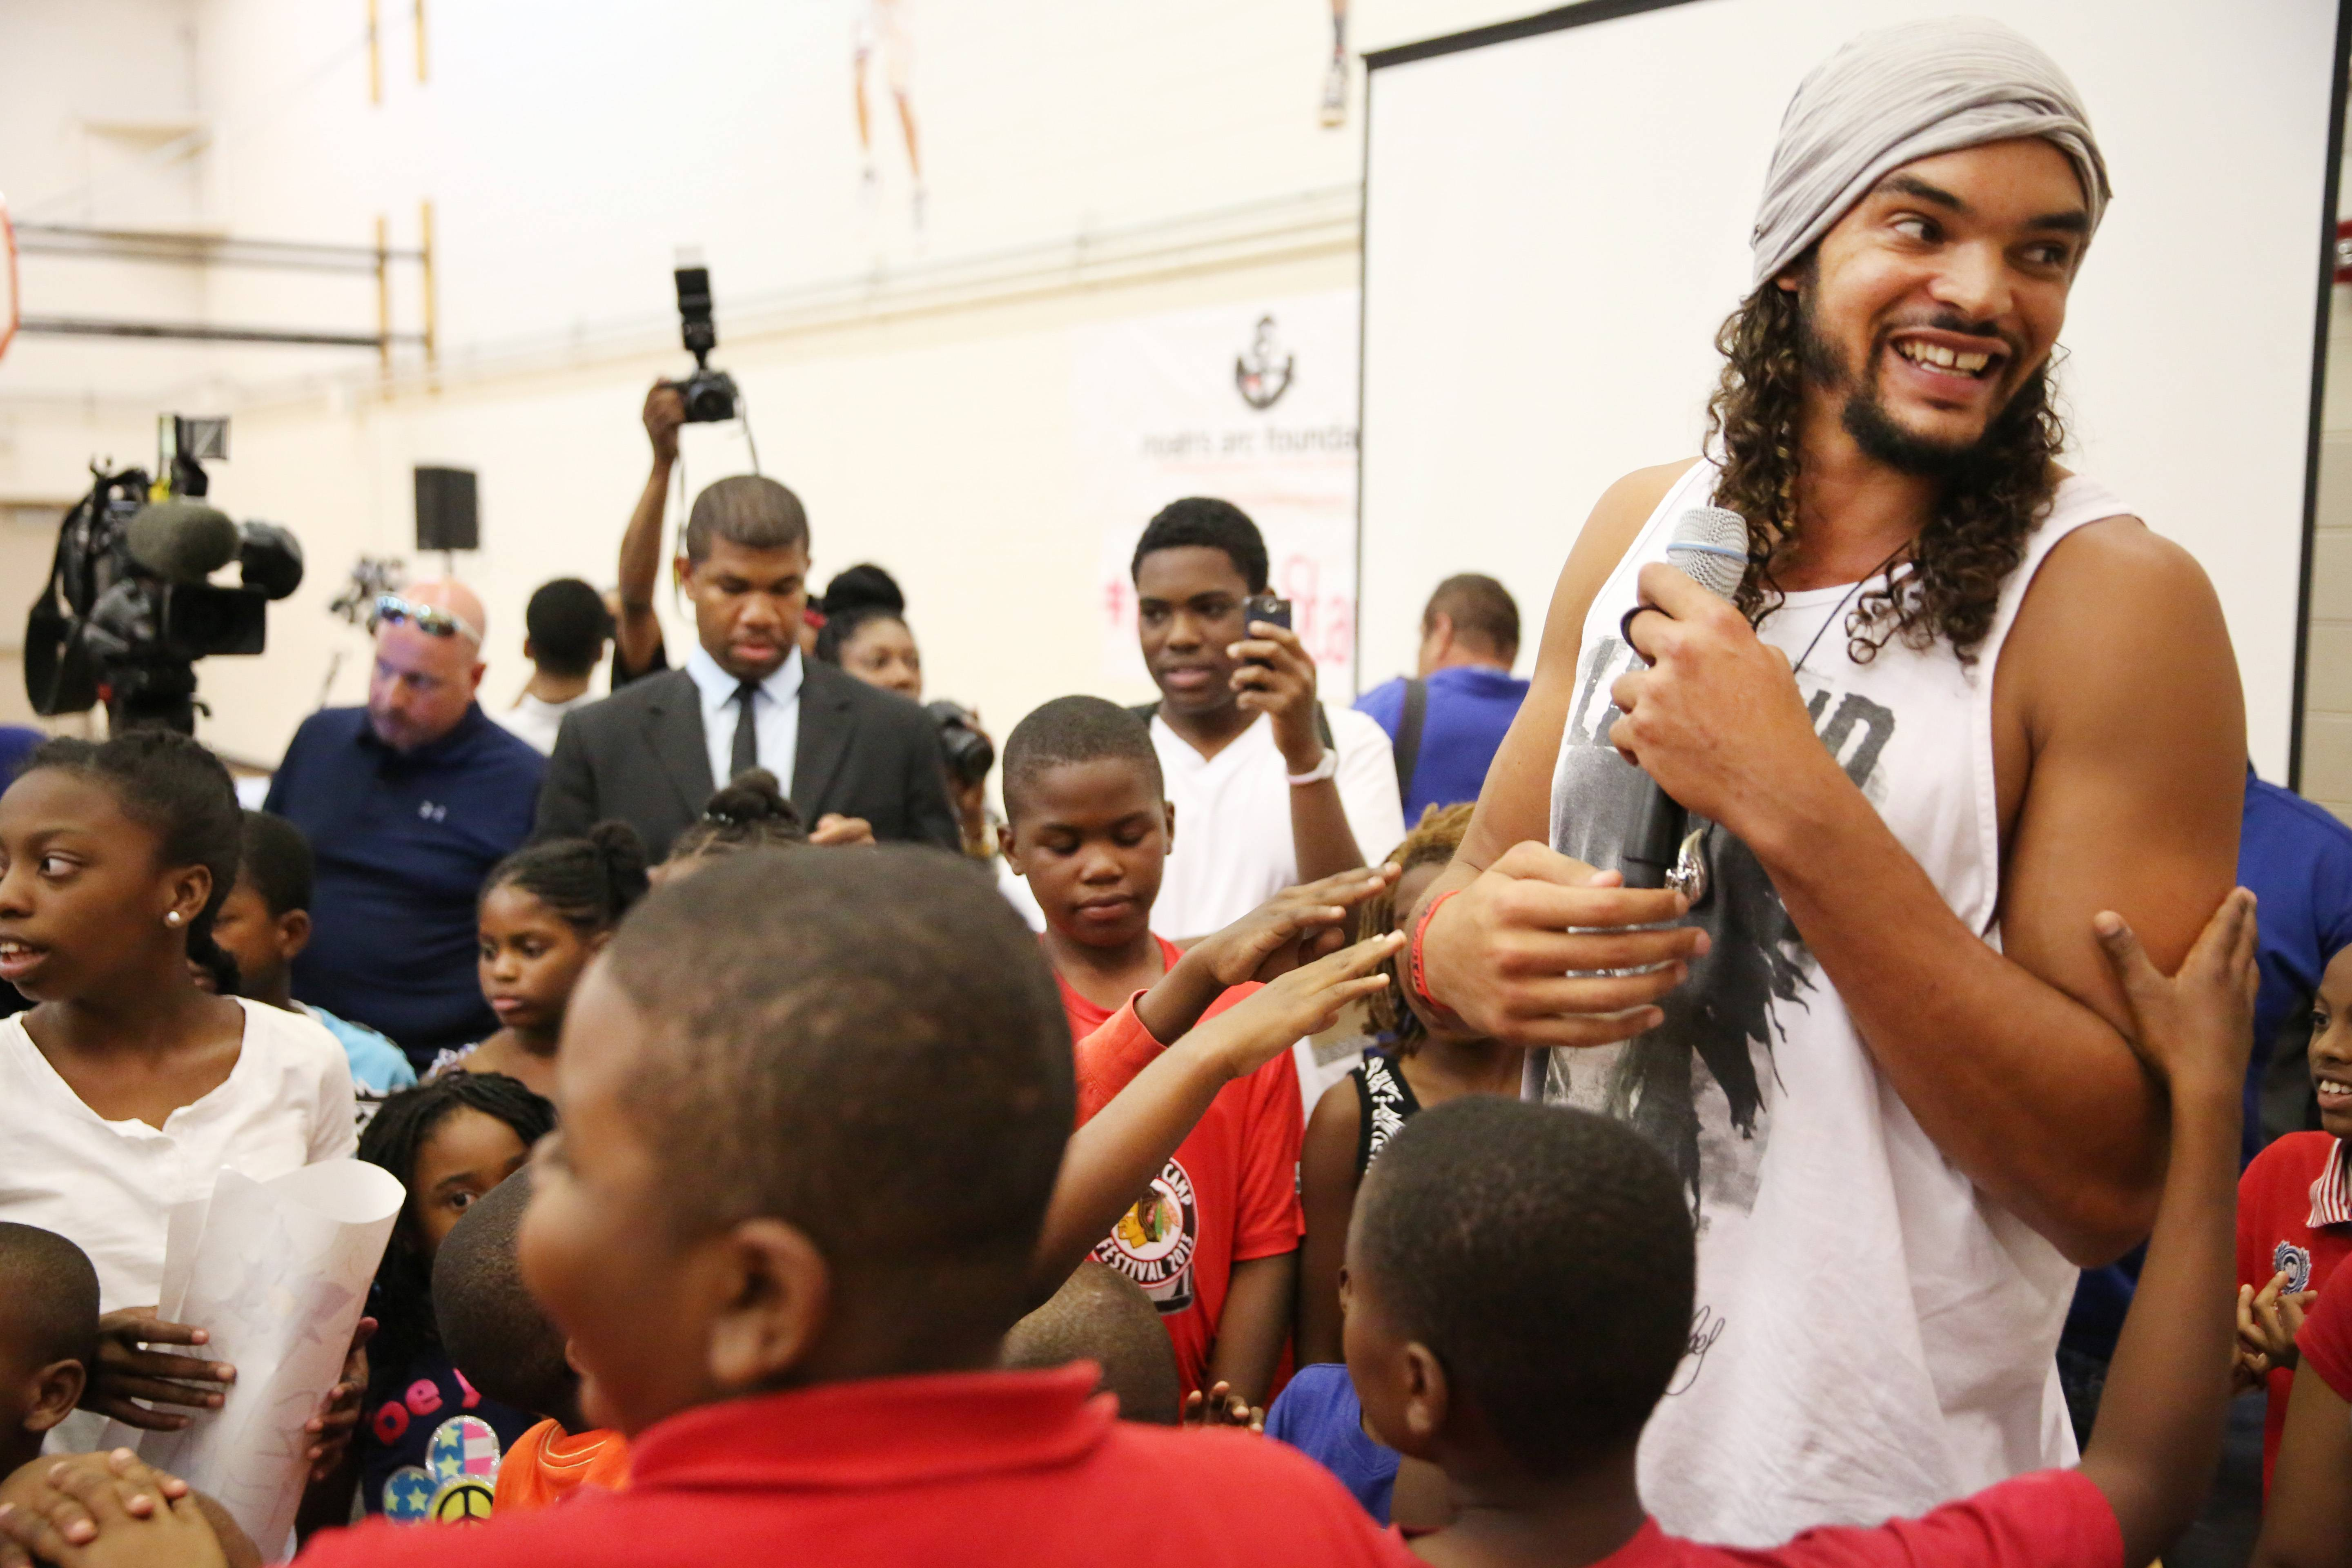 Chicago Bulls NBA All-Star Joakim Noah is surround by a group of kids as he speaks to the media about fighting gun violence in the city through his Noahs Arc Foundation, at Major Adams Community Center on Friday, July 25, 2014 in Chicago. Noah has unveiled an effort to tamp down the city's gun violence, including a public service announcement in which he stars.